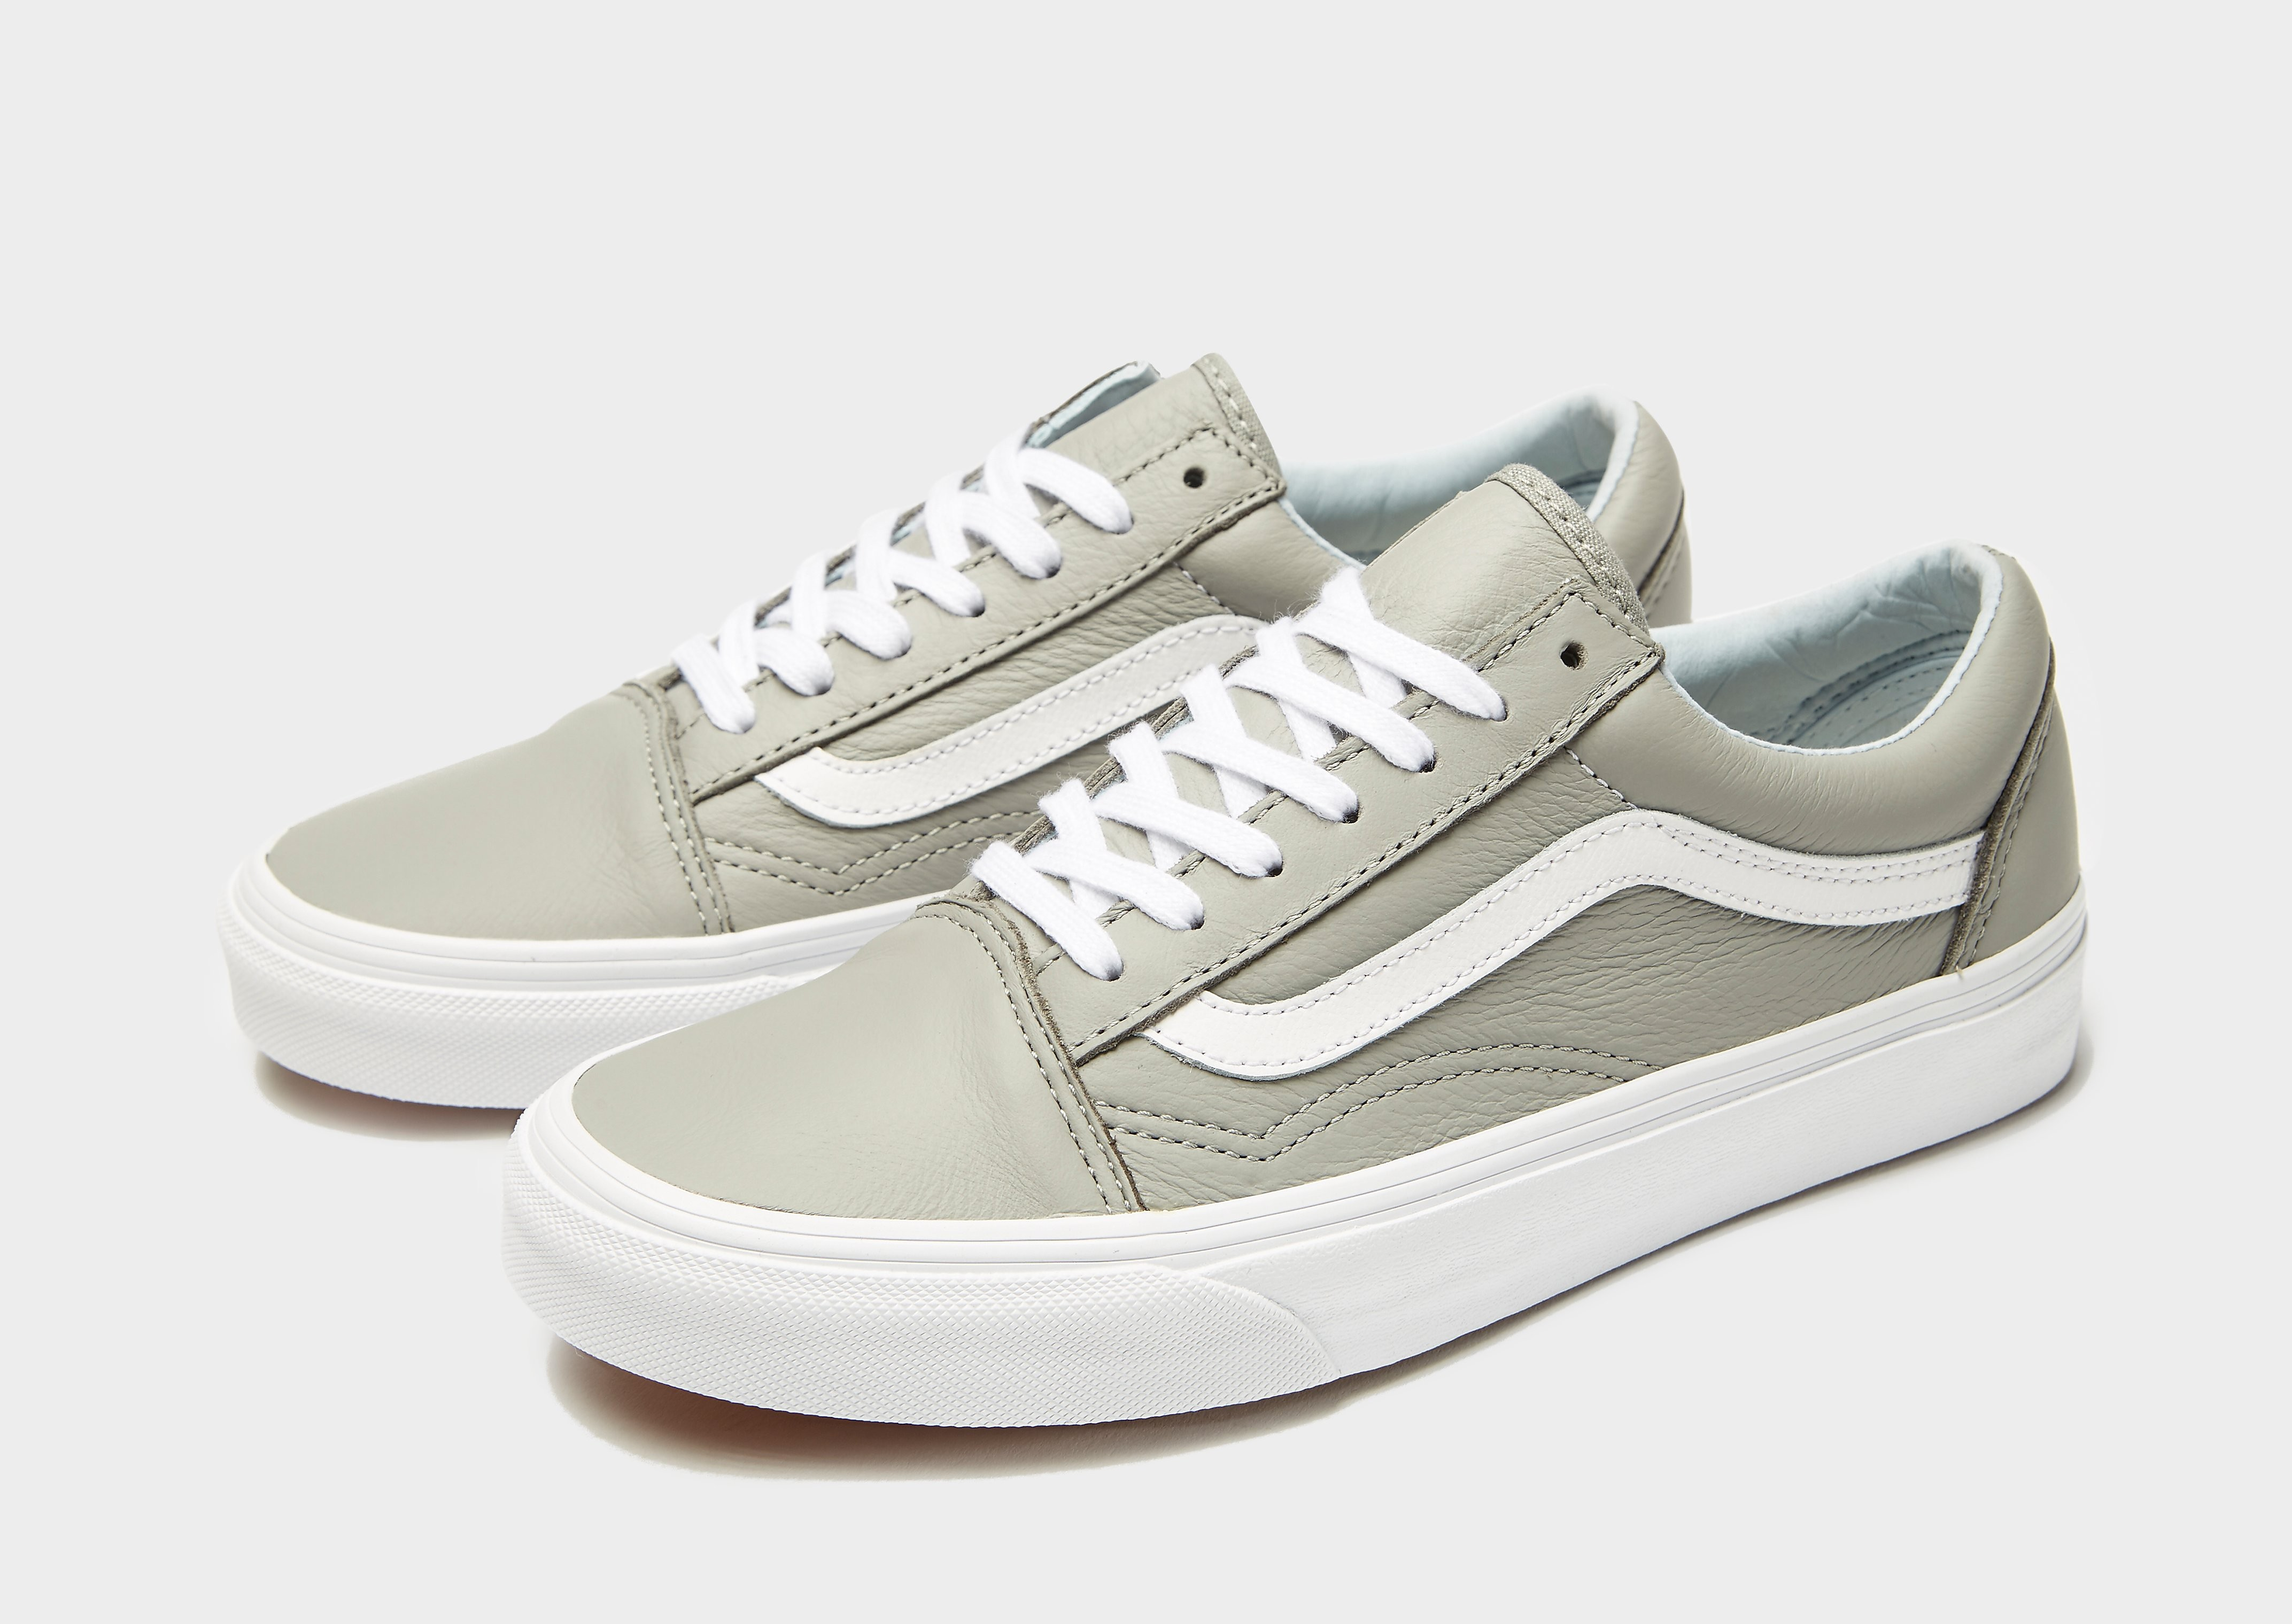 Vans Old Skool Leather Women's